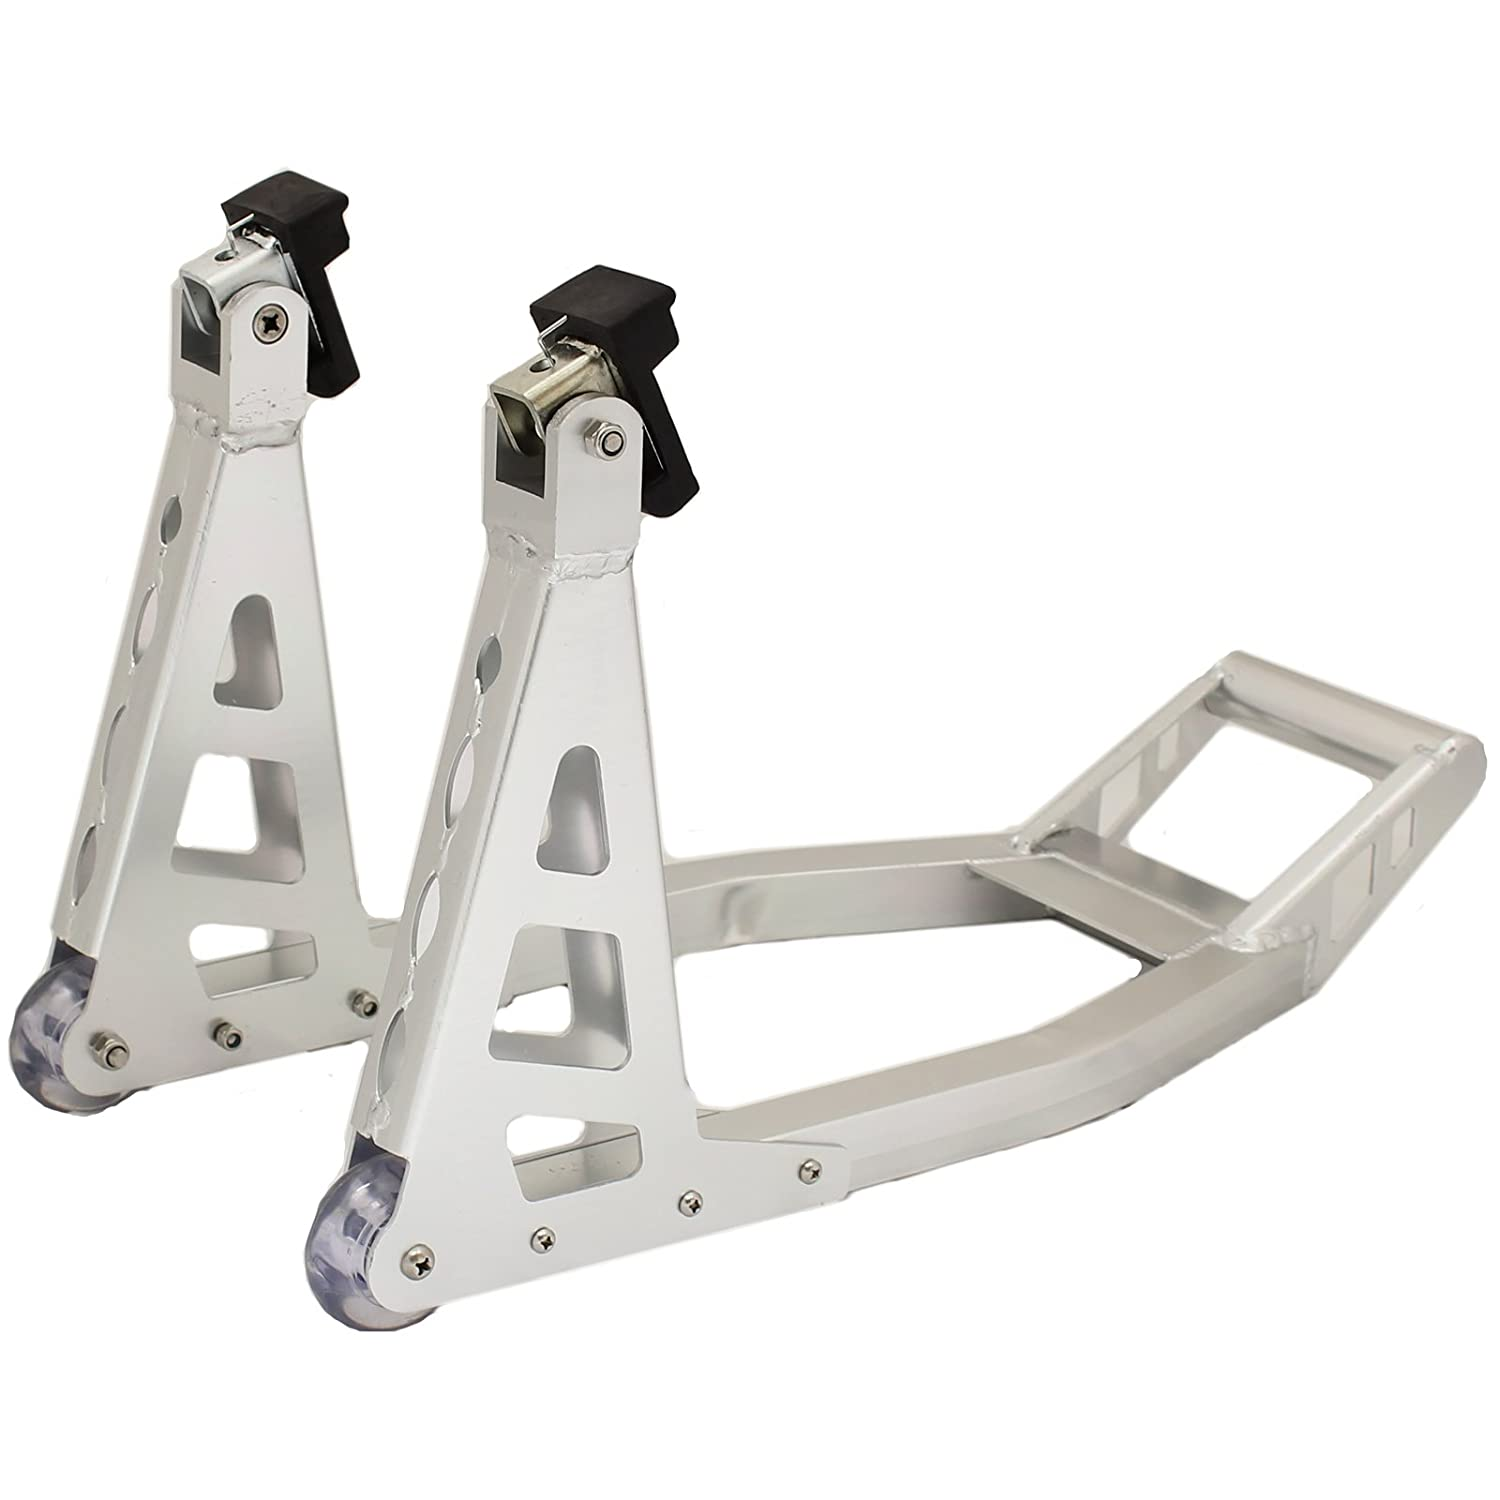 Ryde Aluminium Motorcycle Front Paddock Stand - Silver